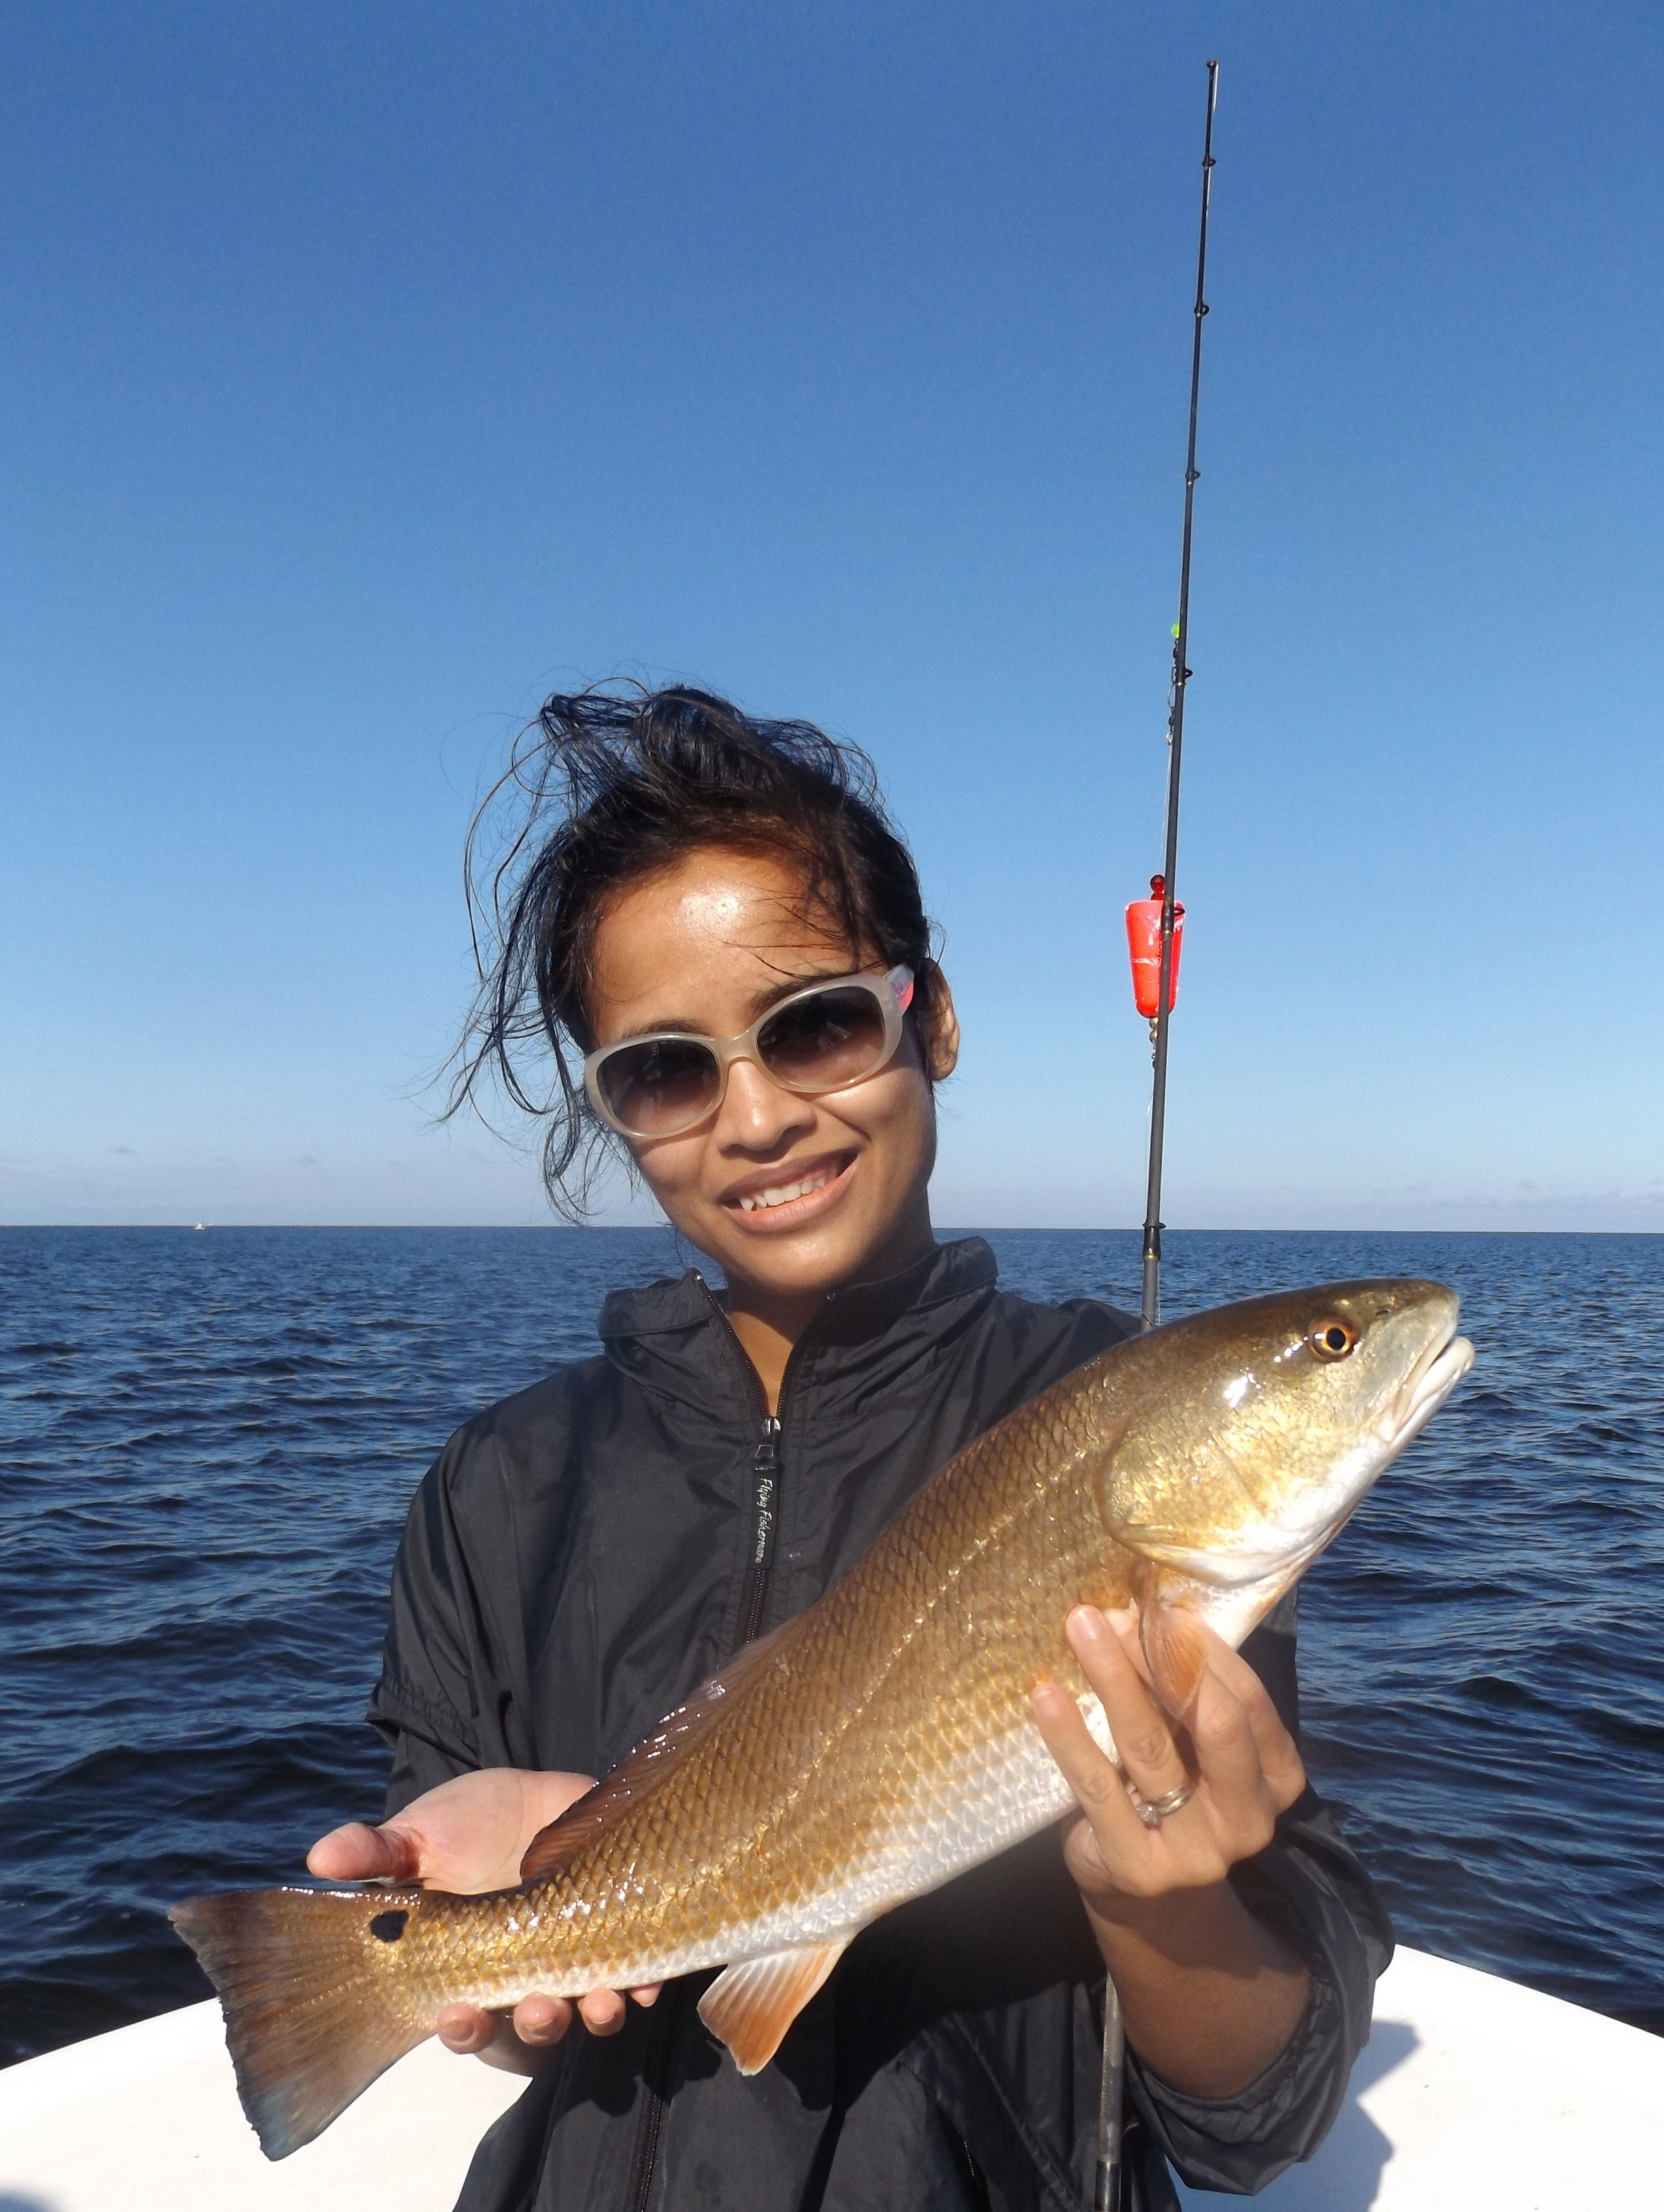 Kasey Mee of Sebring, Fl. with her first -ever redfish!